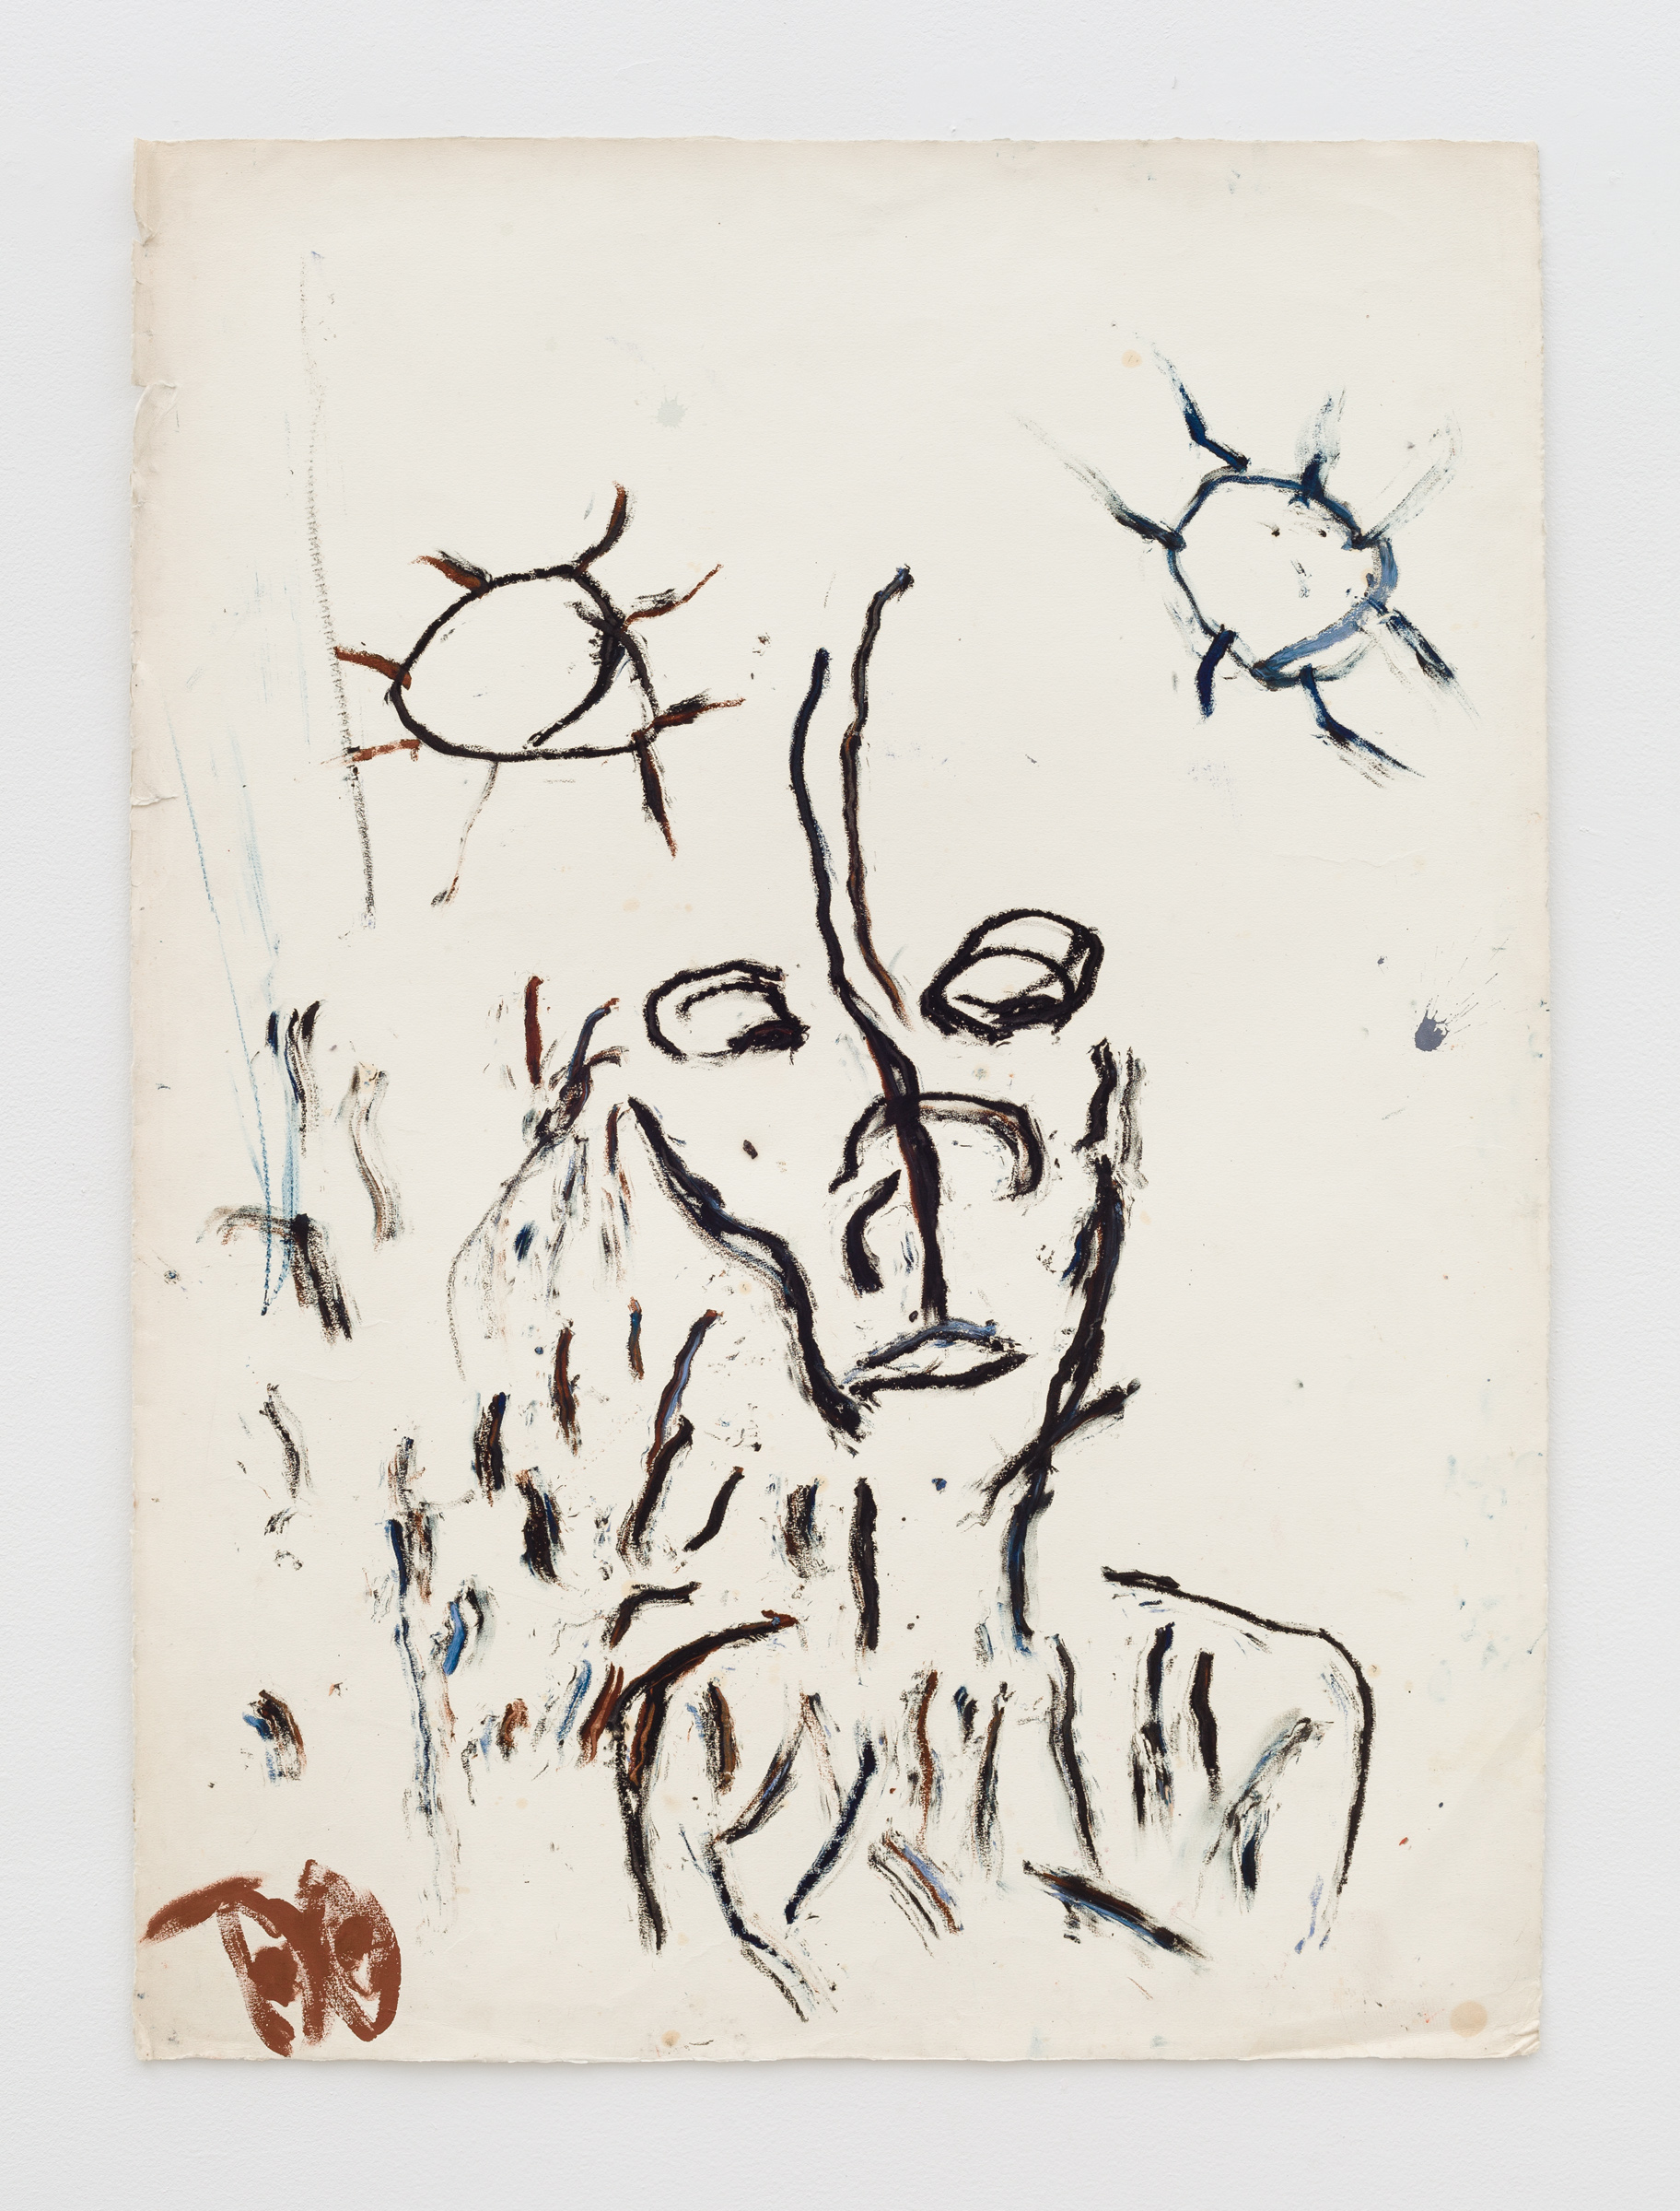 Dan Asher,    Untitled , 1980s, oil stick on paper, 42 × 30 ¾ in., 45 ⅛ × 33 ¾ in. (framed)